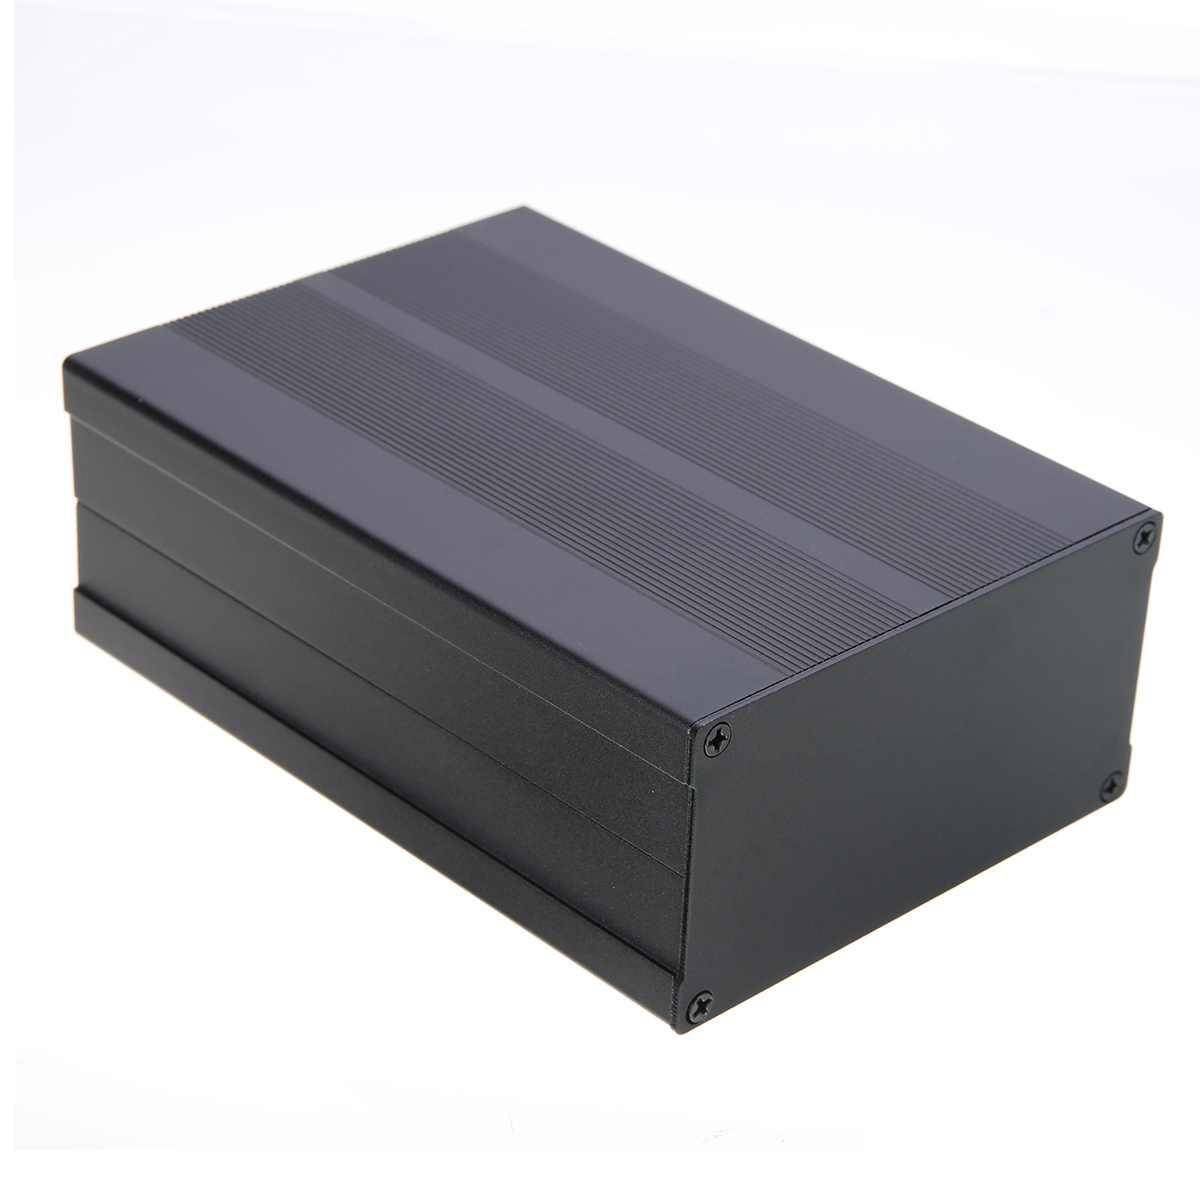 1pc Black Aluminum Enclosure Box Case Circuit Board Project Electronic Black 150*105*55mm For Data Board Power Supply Units black electronic project case aluminum circuit board enclosure box 150x105x55mm with screws